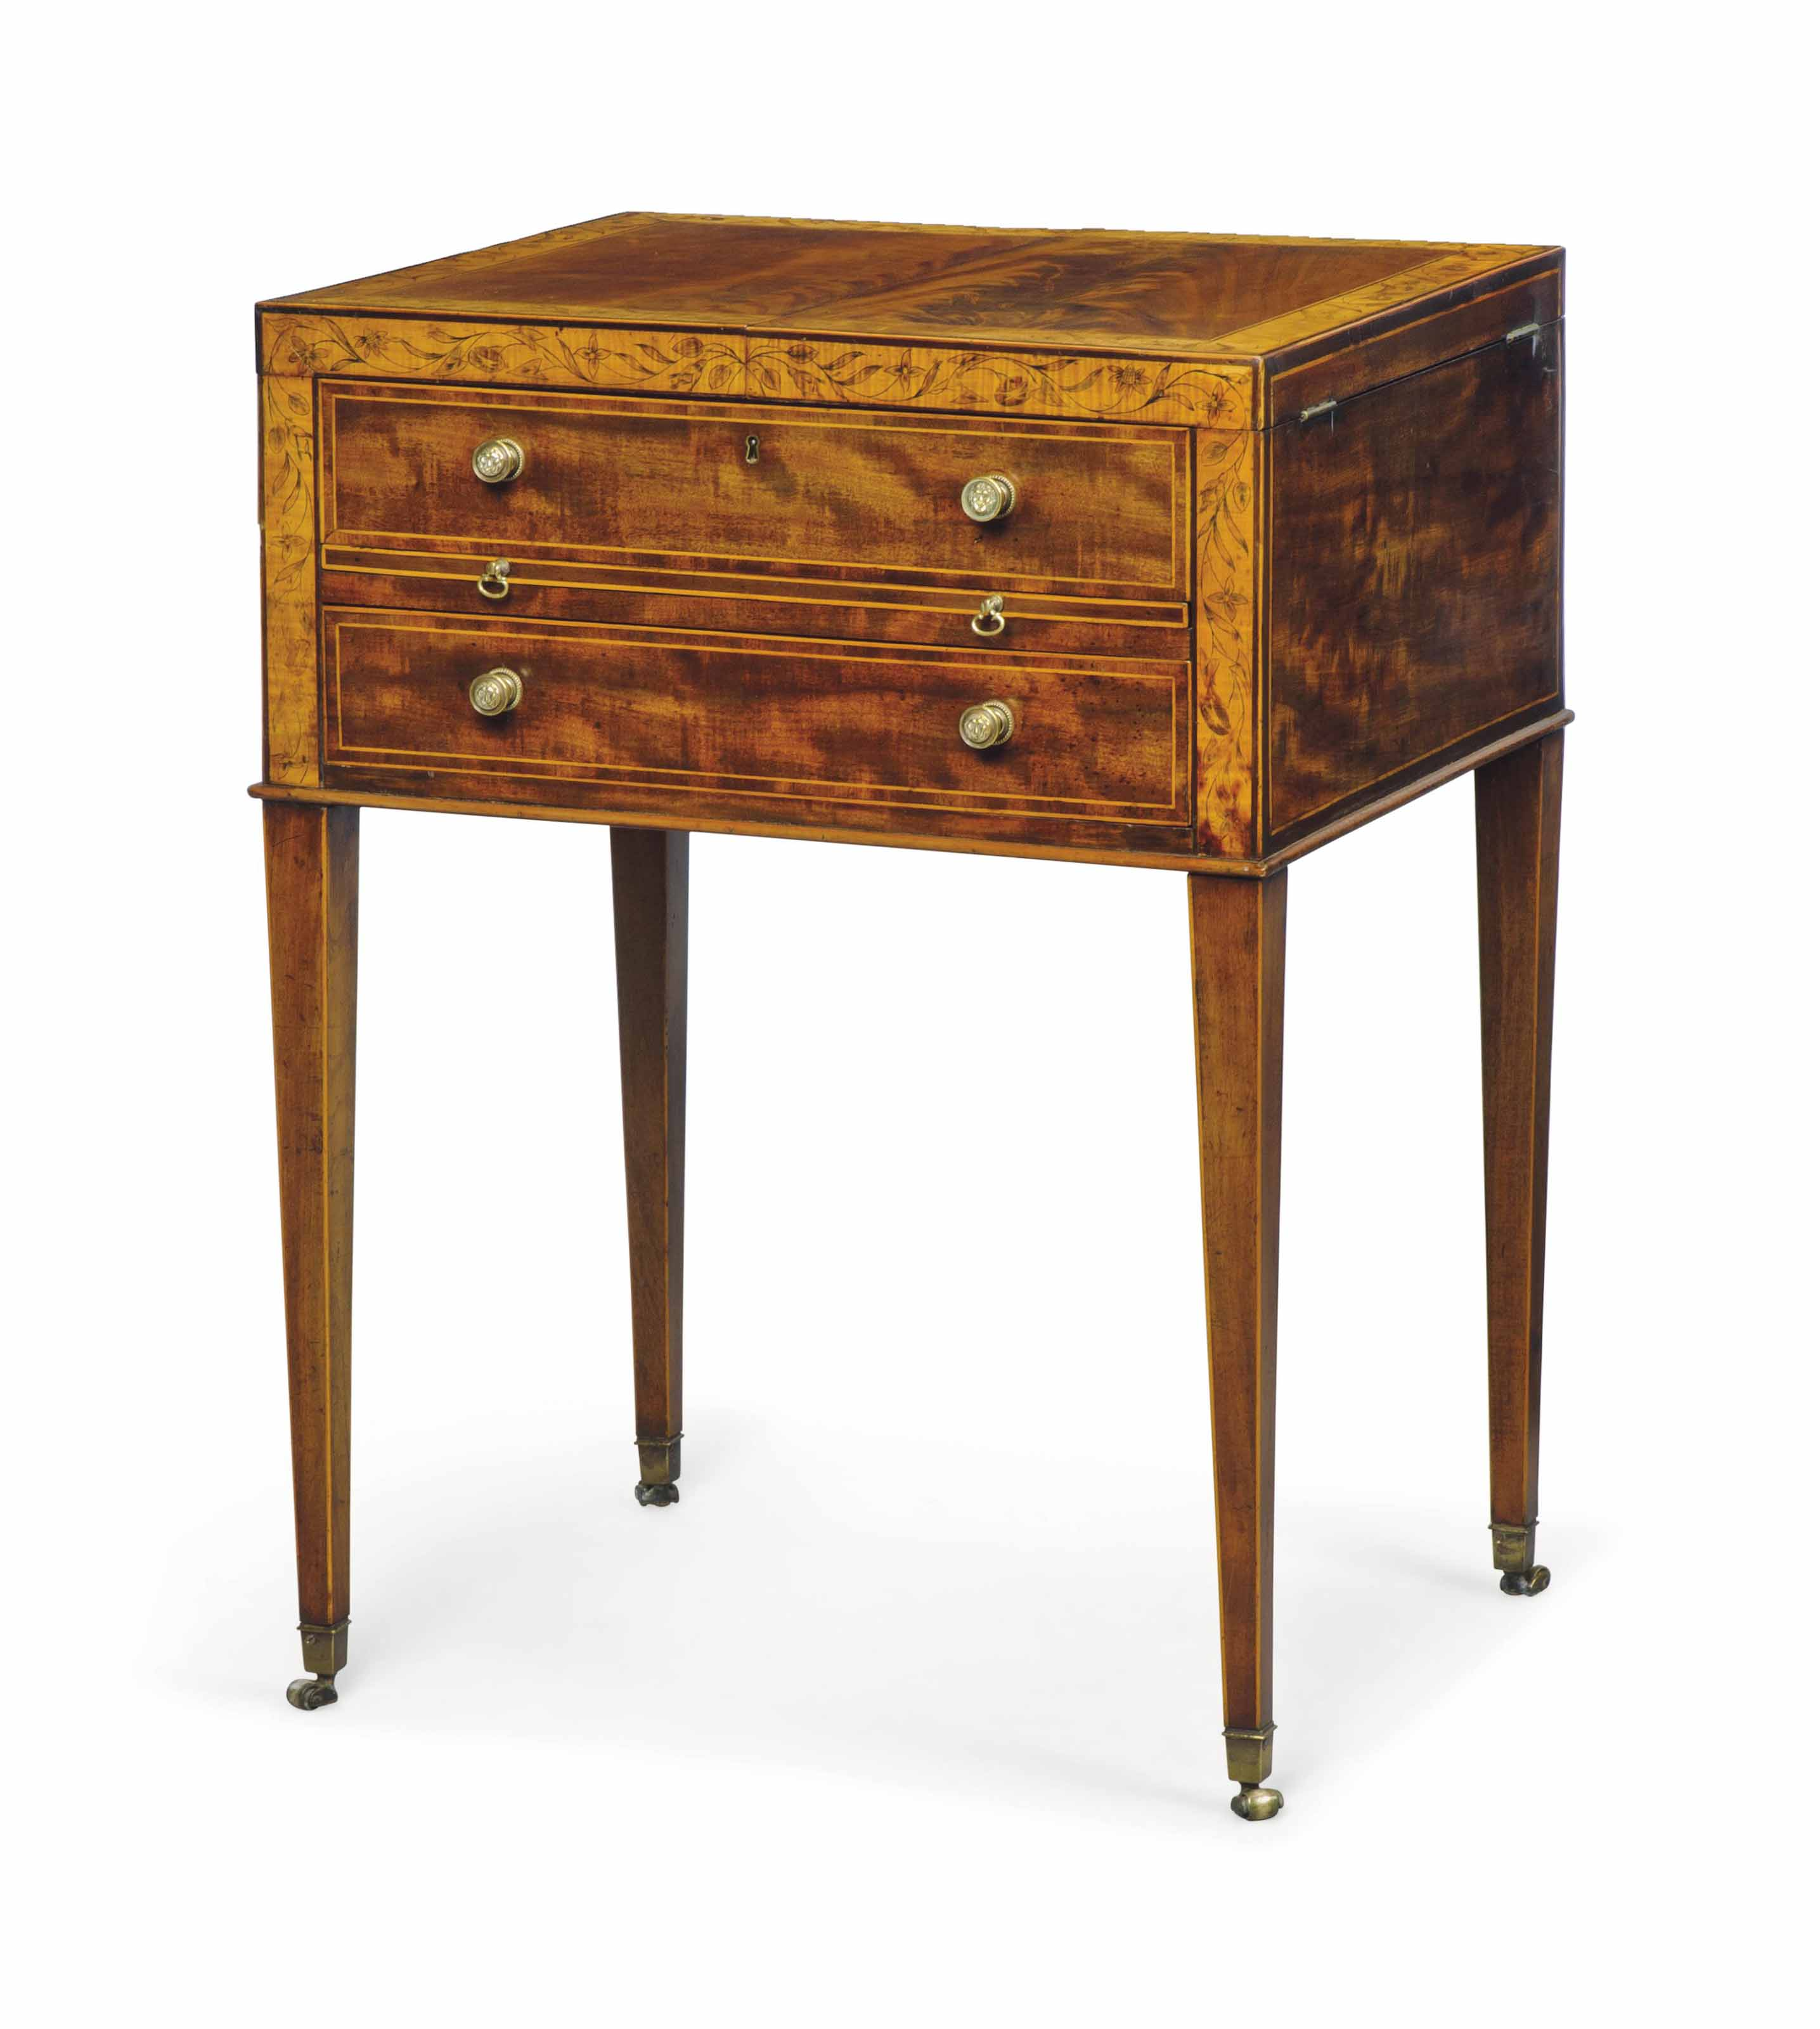 A GEORGE III MAHOGANY, SYCAMORE-BANDED AND PENWORK GENTLEMAN'S DRESSING TABLE